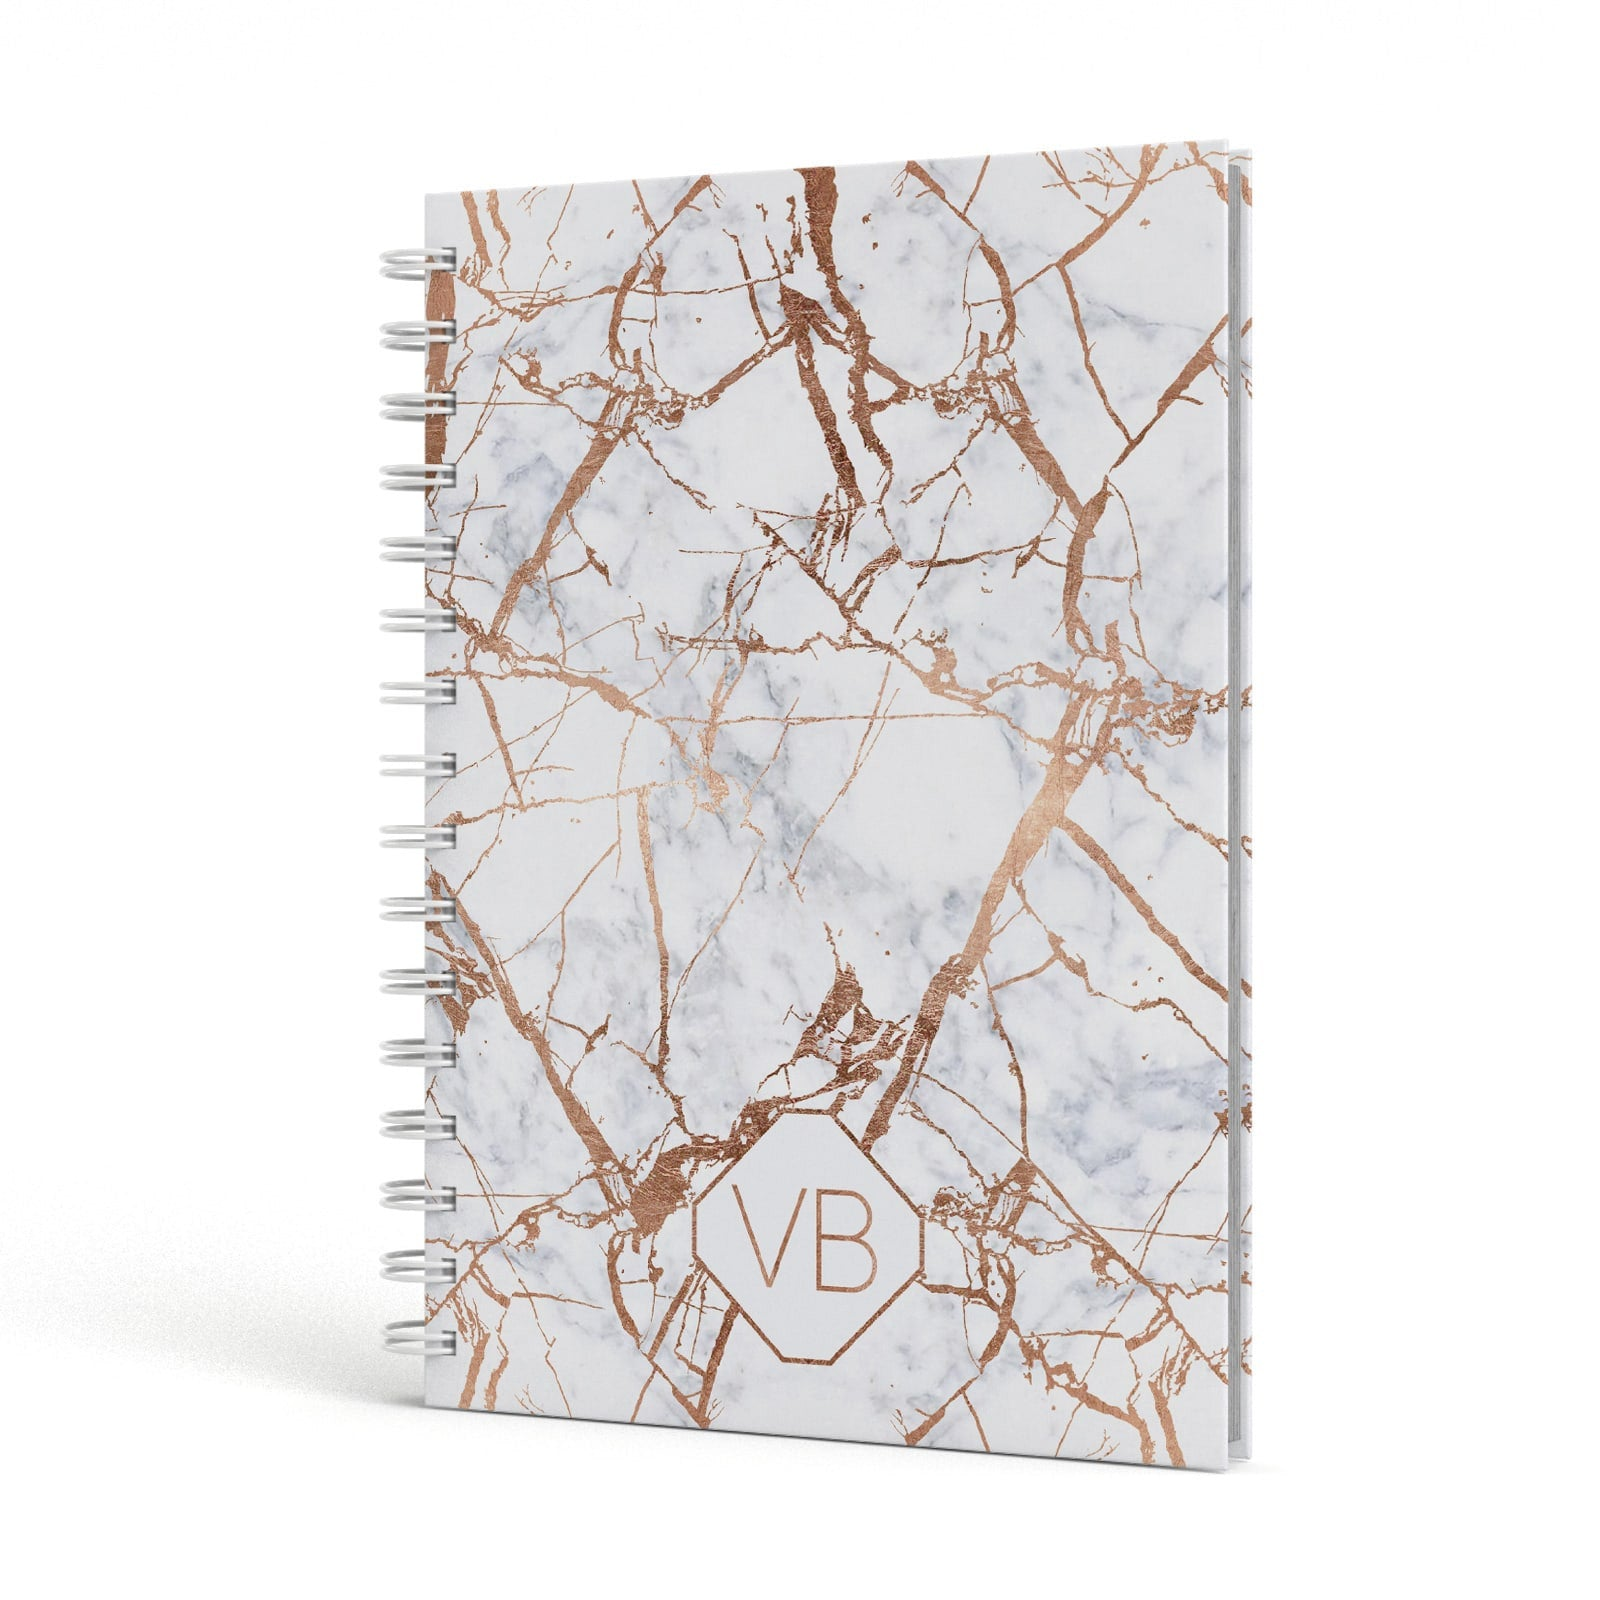 Personalised Rose Gold Vein Marble Initials A5 Hardcover Notebook Side View